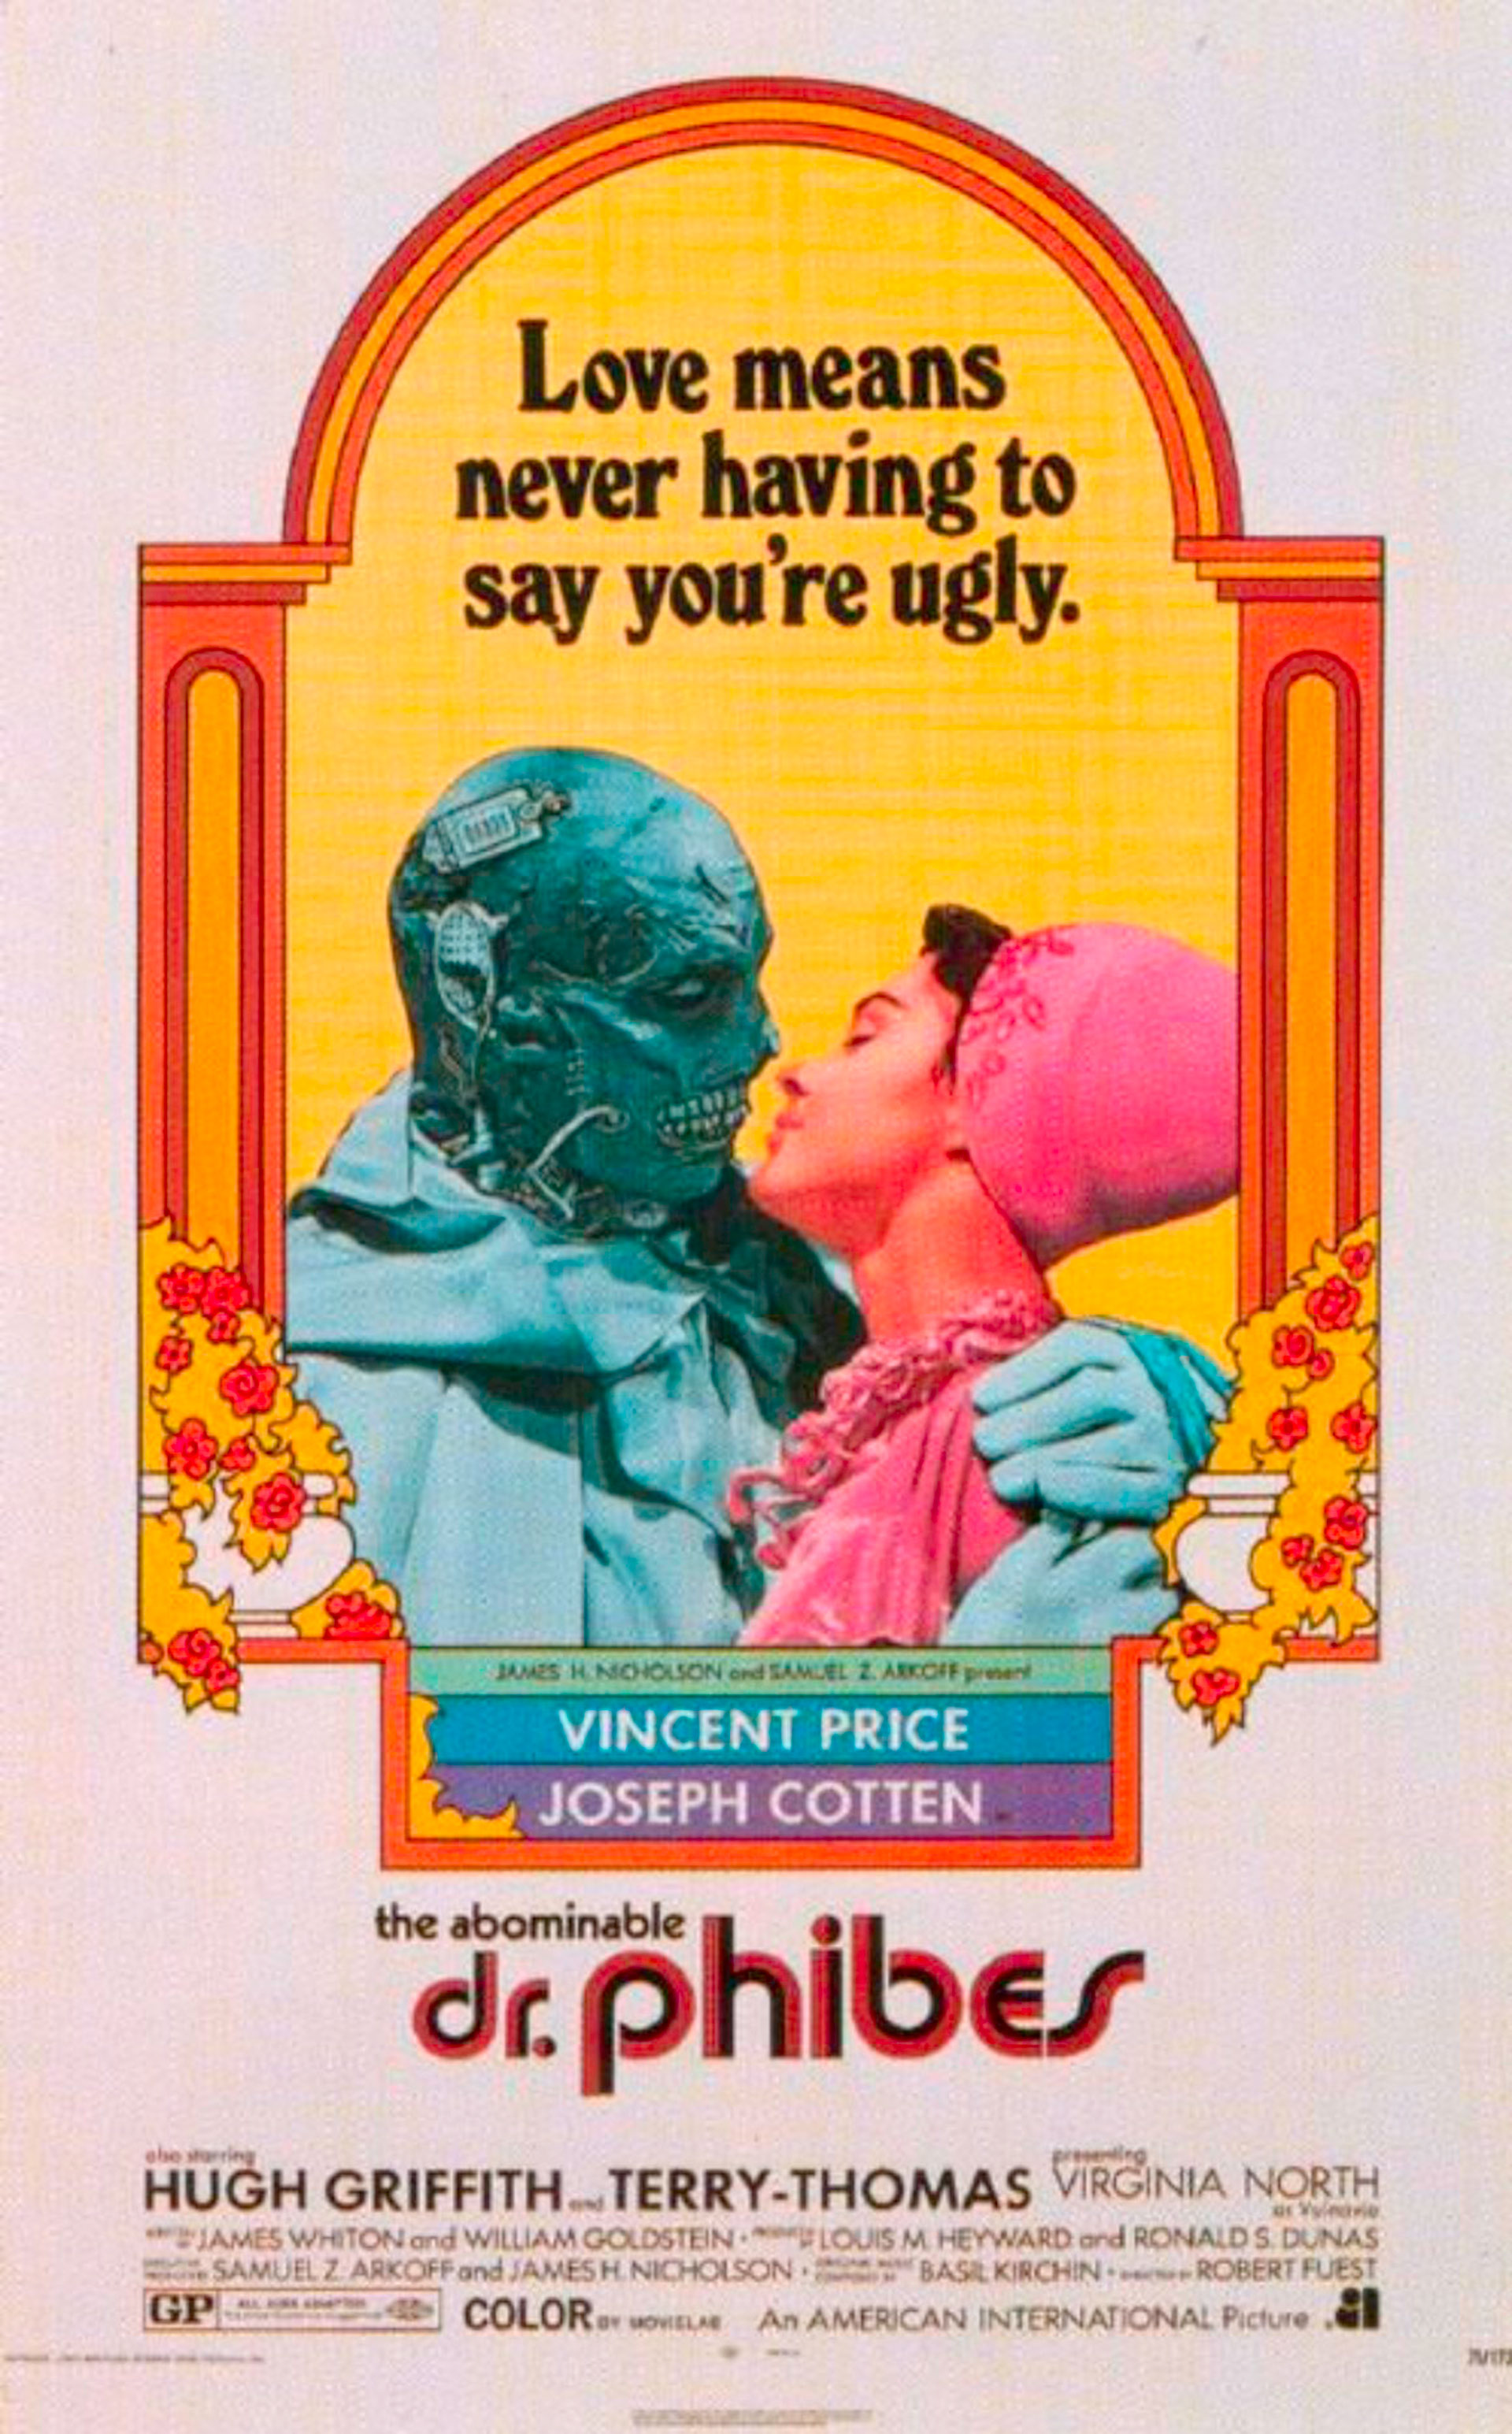 #GENTE-The-abominable-Dr.-Phibes